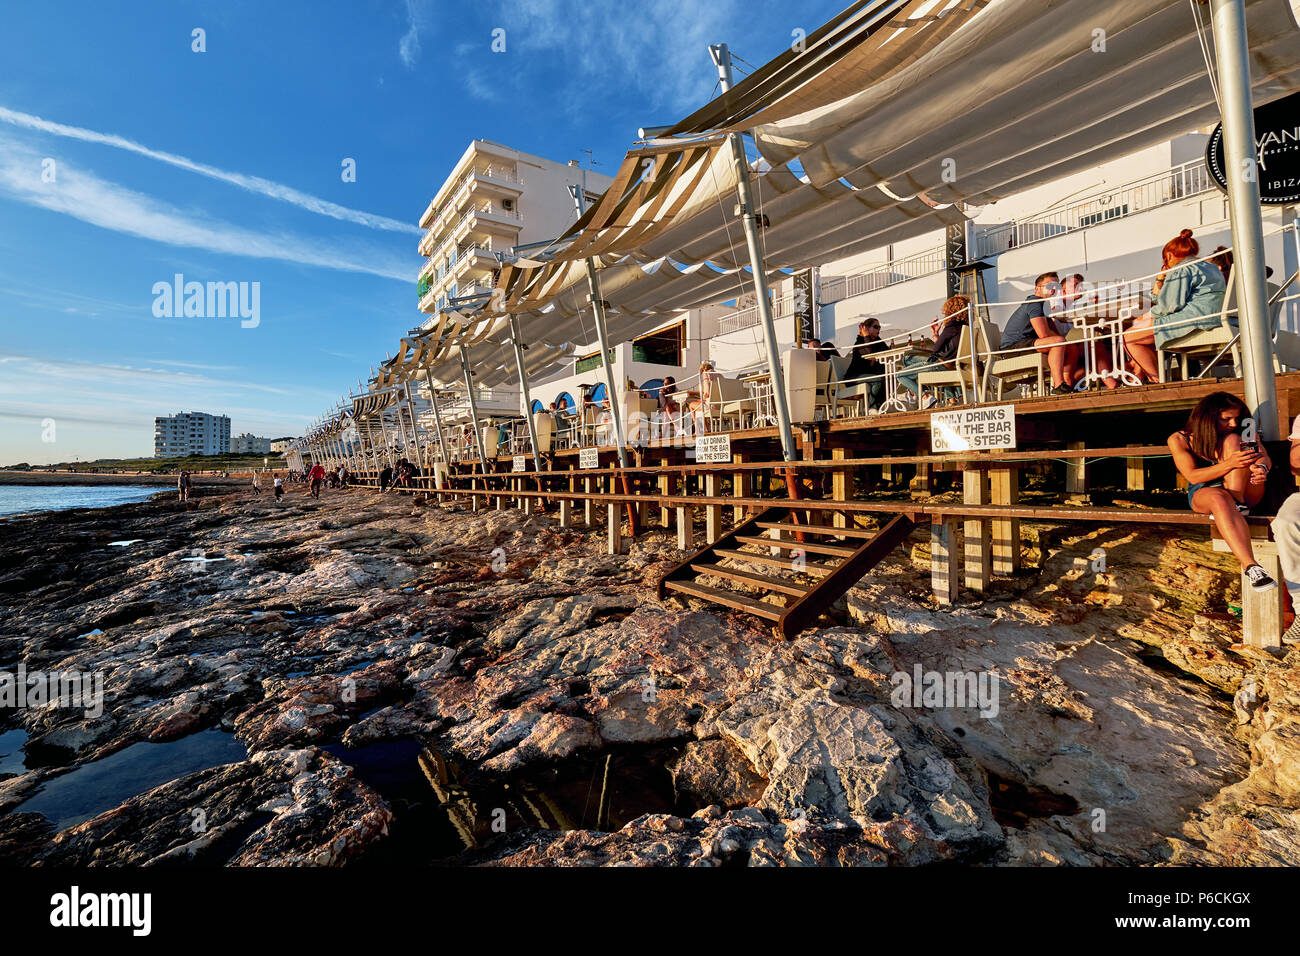 Ibiza Island, Spain - May 1, 2018: Crowds of people meet the sunset at the seafront terrace of Cafe Del Mar. This place is famous for views to the sun - Stock Image